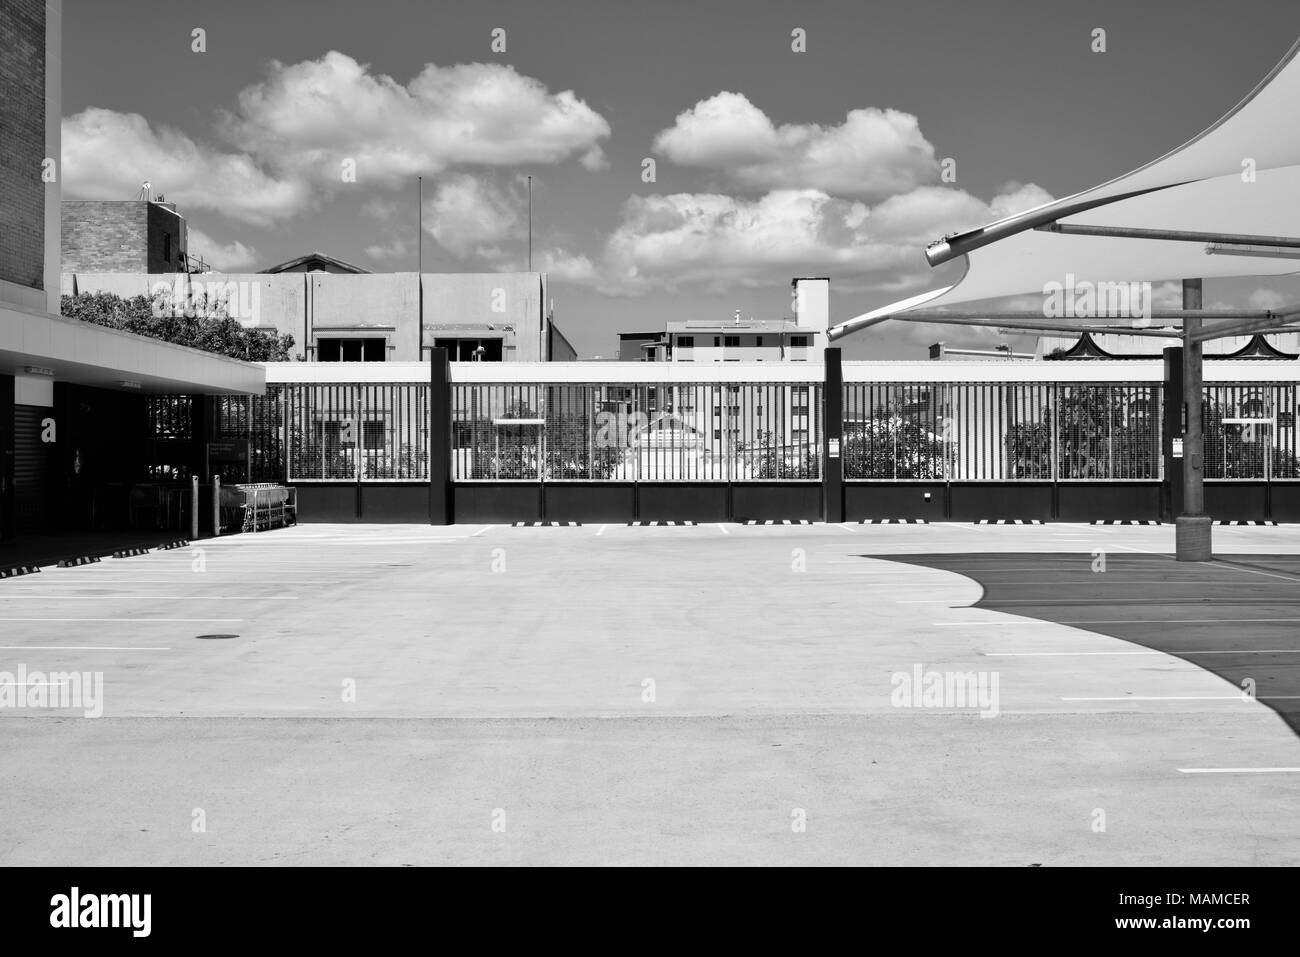 Car park near woolworths set in black and white desolate and cold feel with a warmth, City lane off flinders street in Townsville Queensland Australia - Stock Image